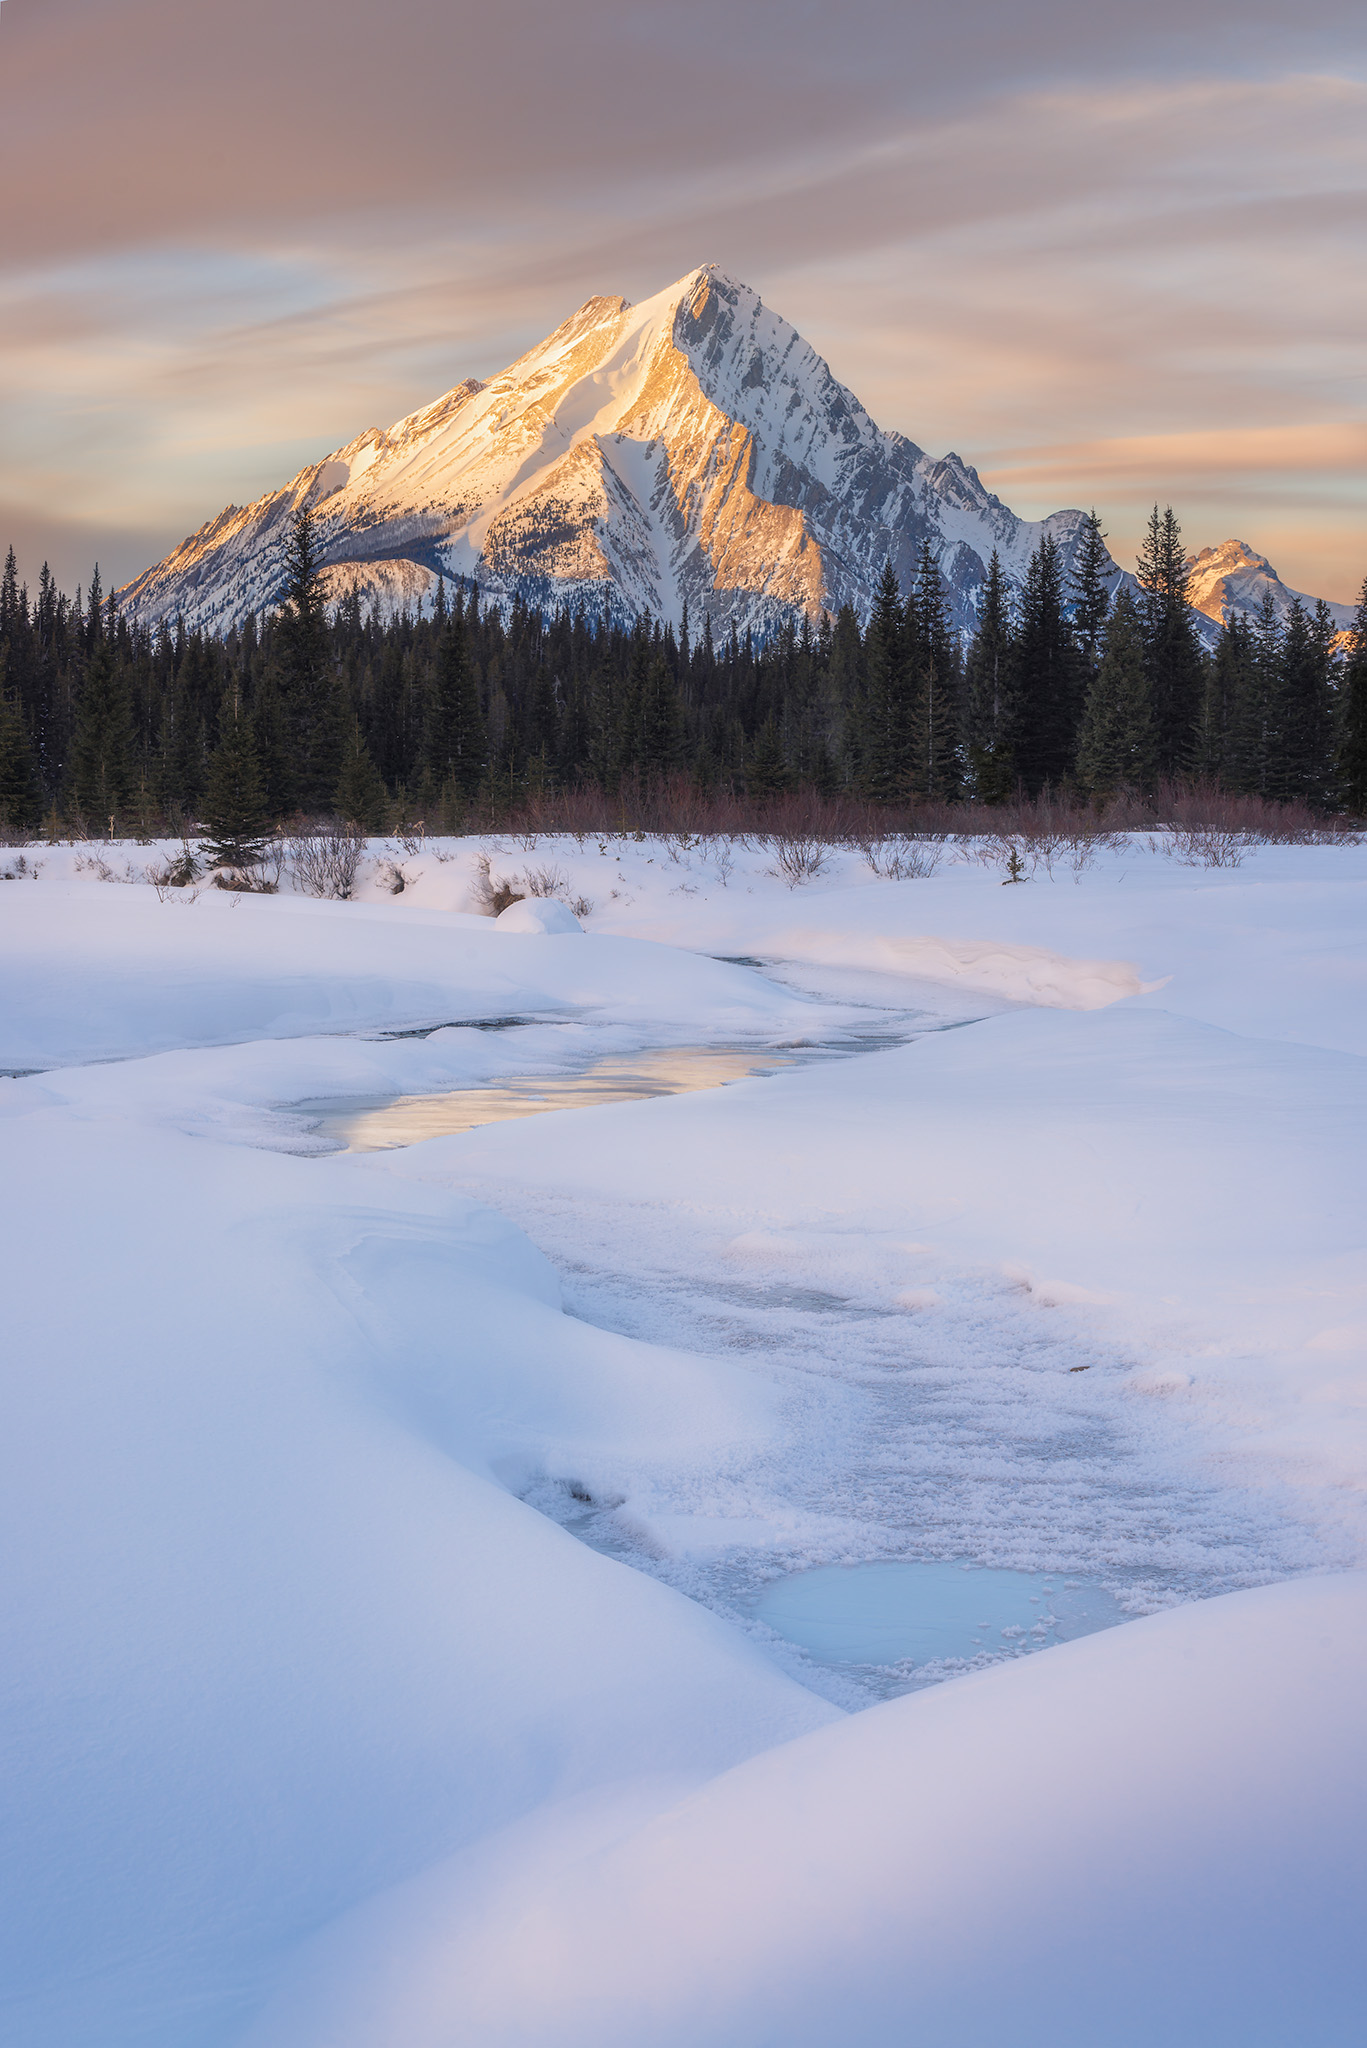 A landscape photograph of a mountain bathed in sunset light in the Canadian Rockies